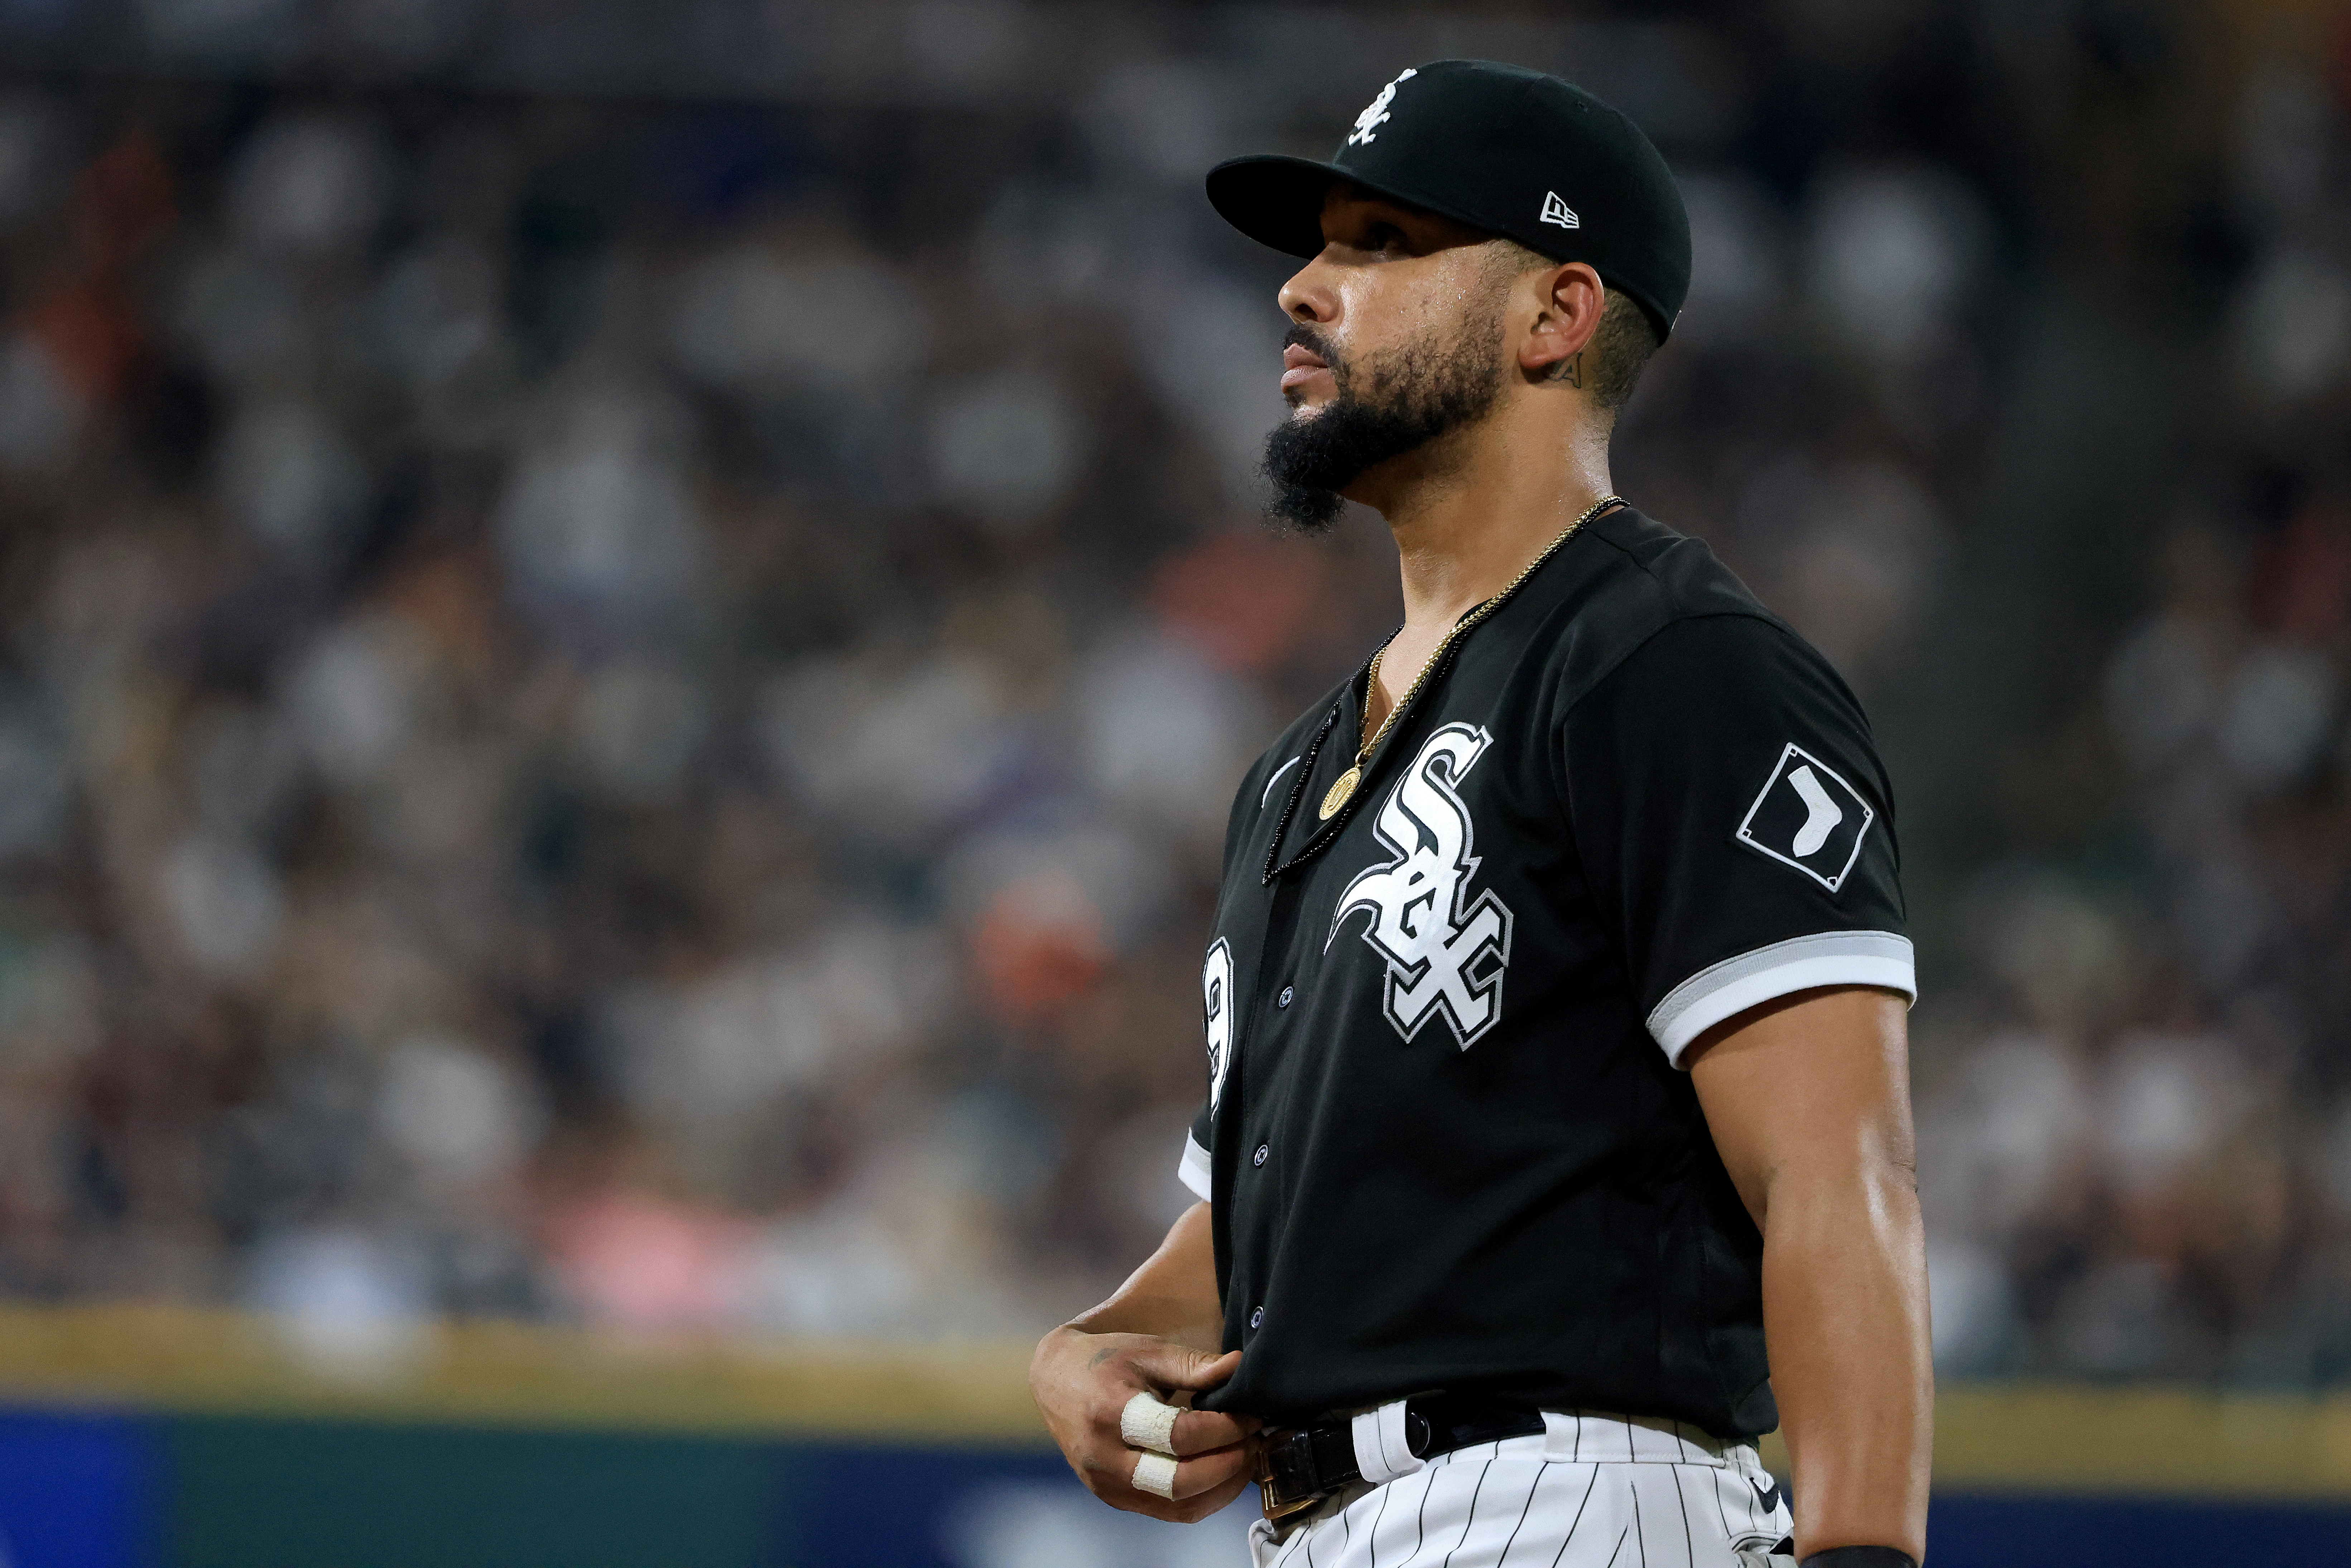 Jose Abreu of the Chicago White Sox on the field in the game against the Boston Red Sox at Guaranteed Rate Field on September 11, 2021 in Chicago, Illinois.